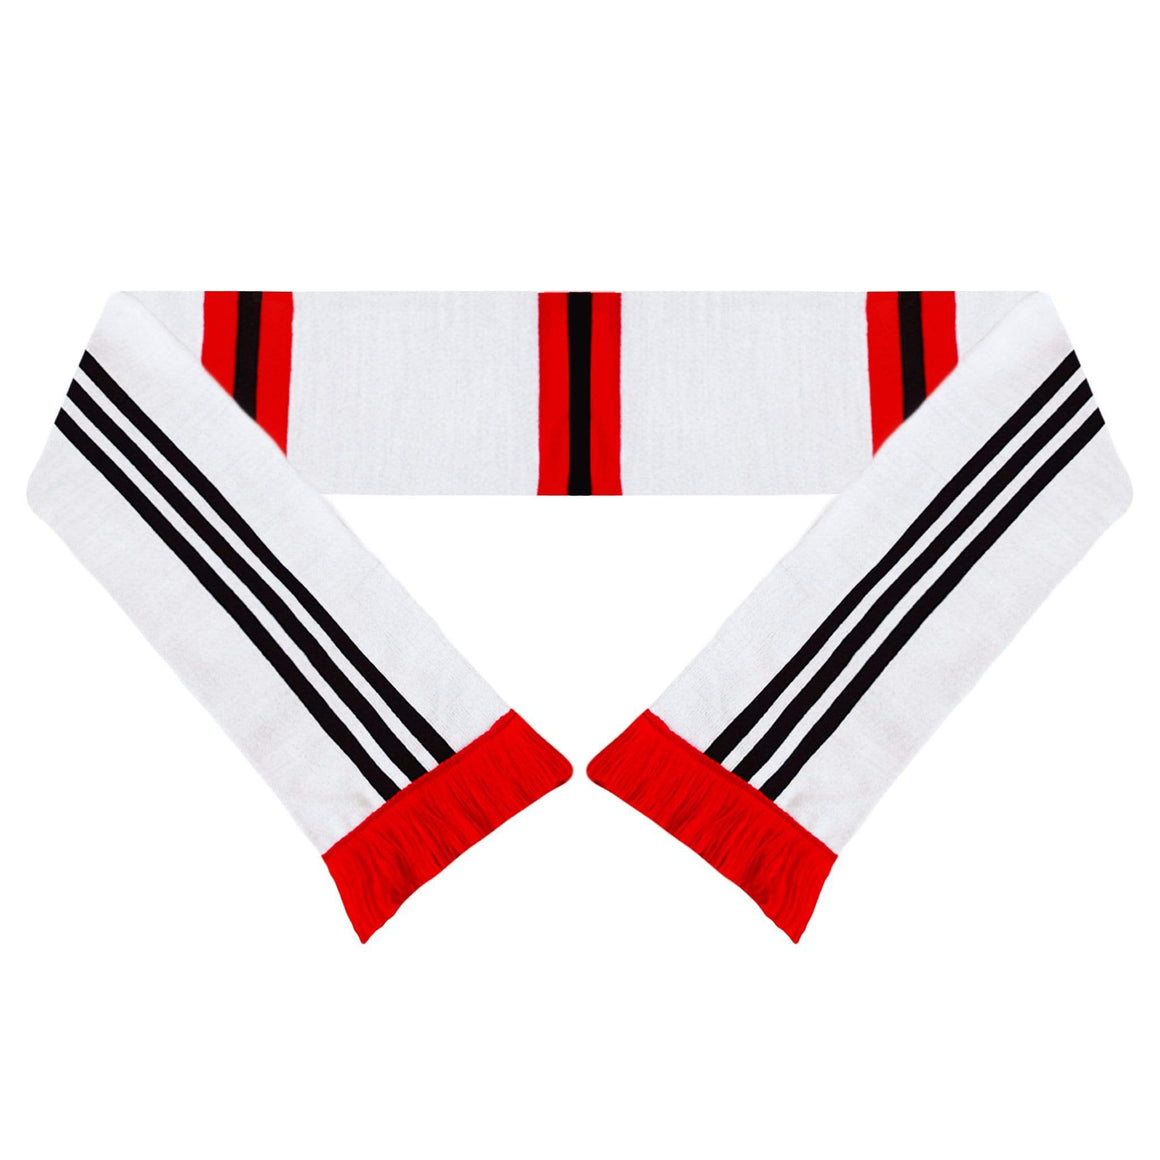 Manchester United Retro Football Scarf 1975-80 Away Shirt - Football Shirt Collective